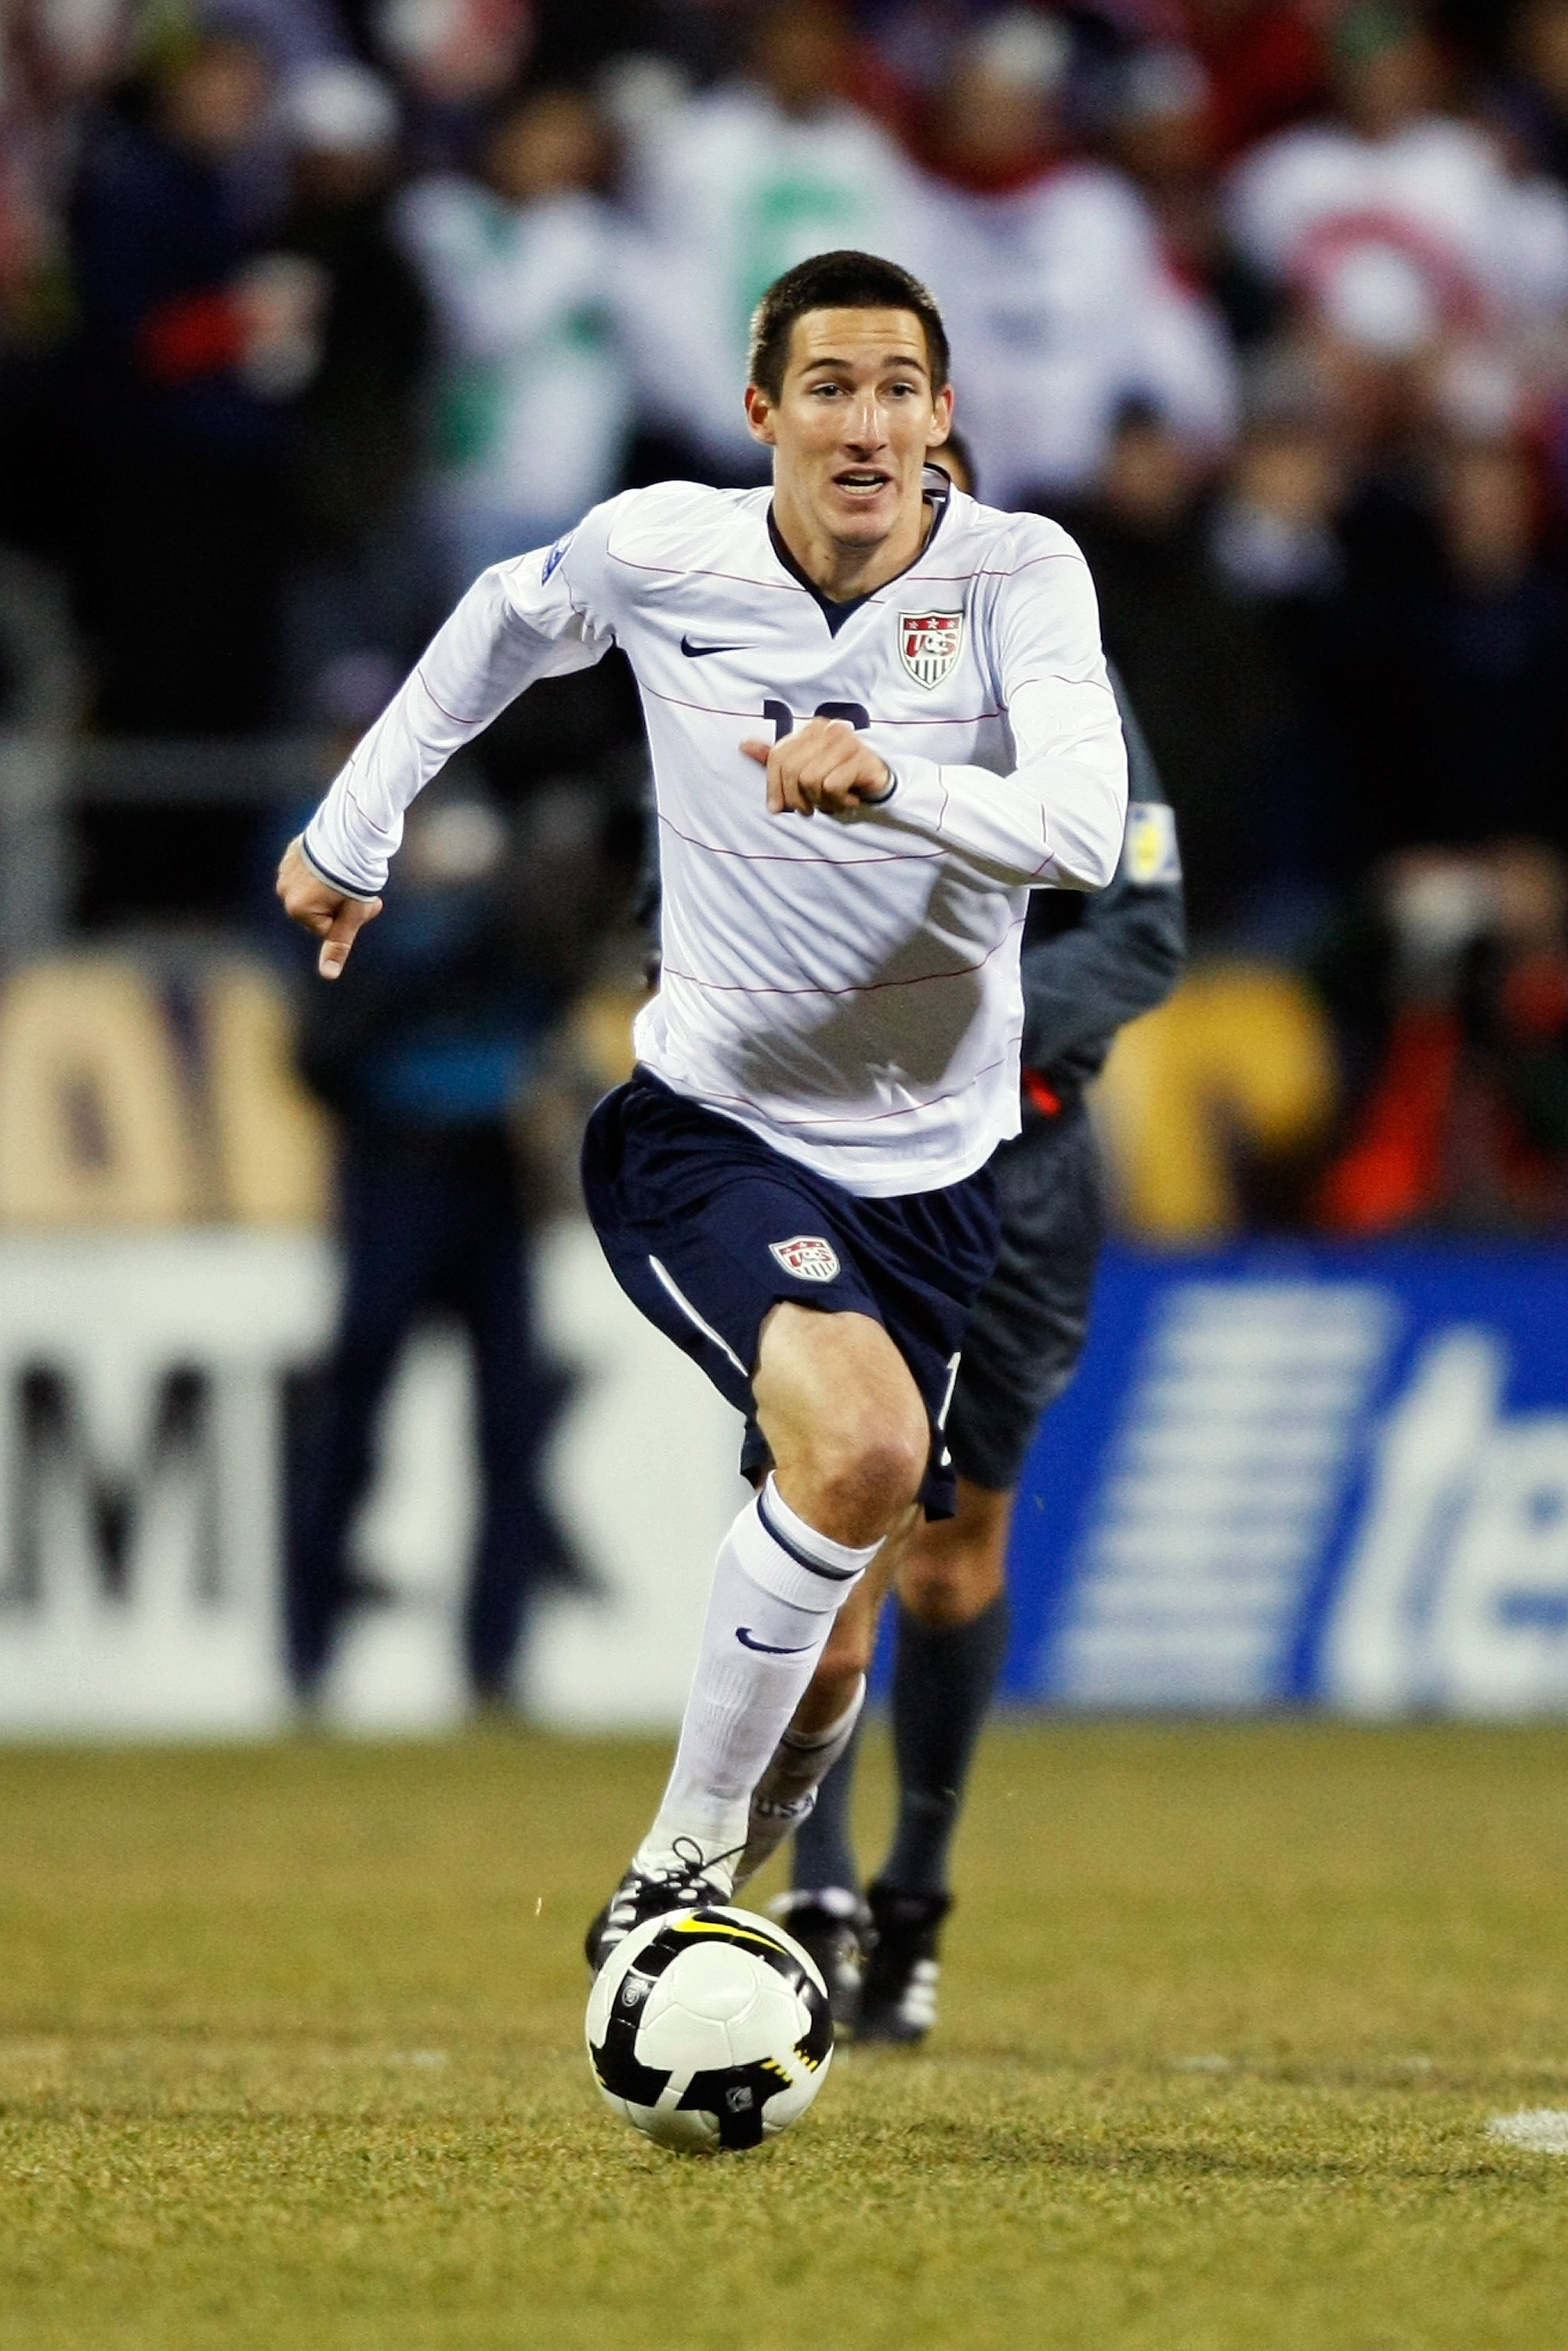 COLUMBUS, OH - FEBRUARY 11:  Sacha Kljestan #16 of USA dribbles the ball against Mexico during a FIFA 2010 World Cup qualifying match in the CONCACAF region on February 11, 2009 at Columbus Crew Stadium in Columbus, Ohio. (Photo by Jamie Sabau/Getty Image